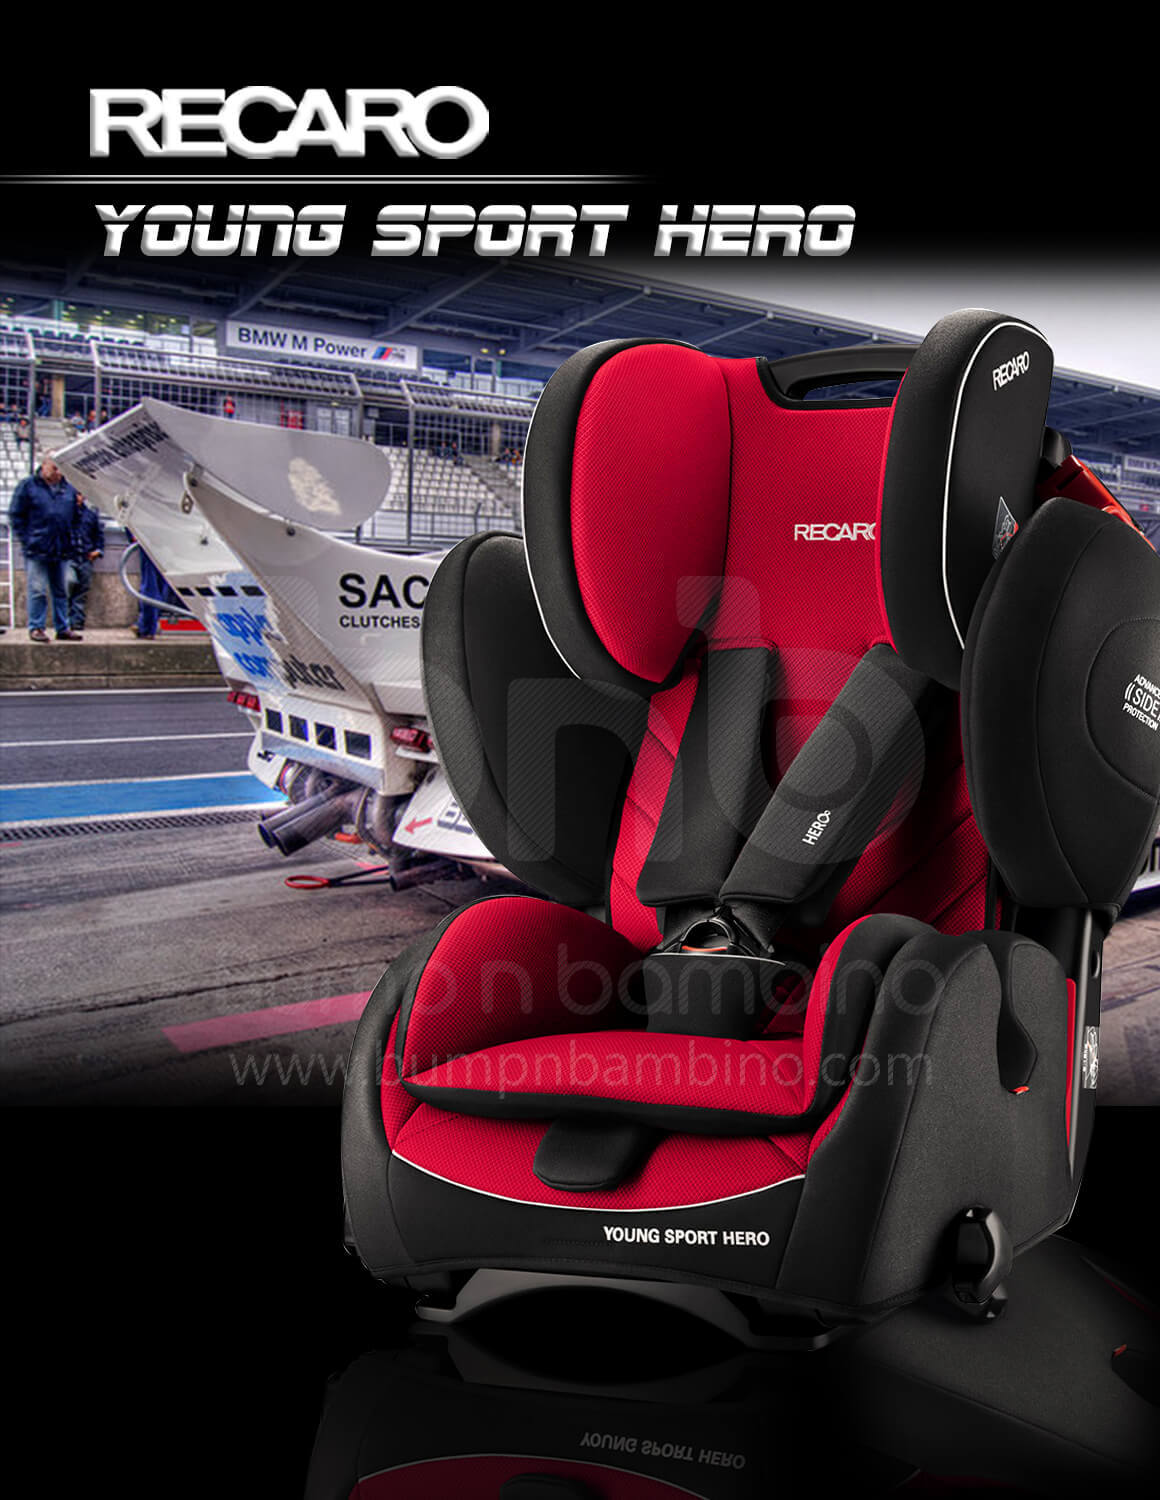 recaro young sport hero car seat bump n bambino. Black Bedroom Furniture Sets. Home Design Ideas